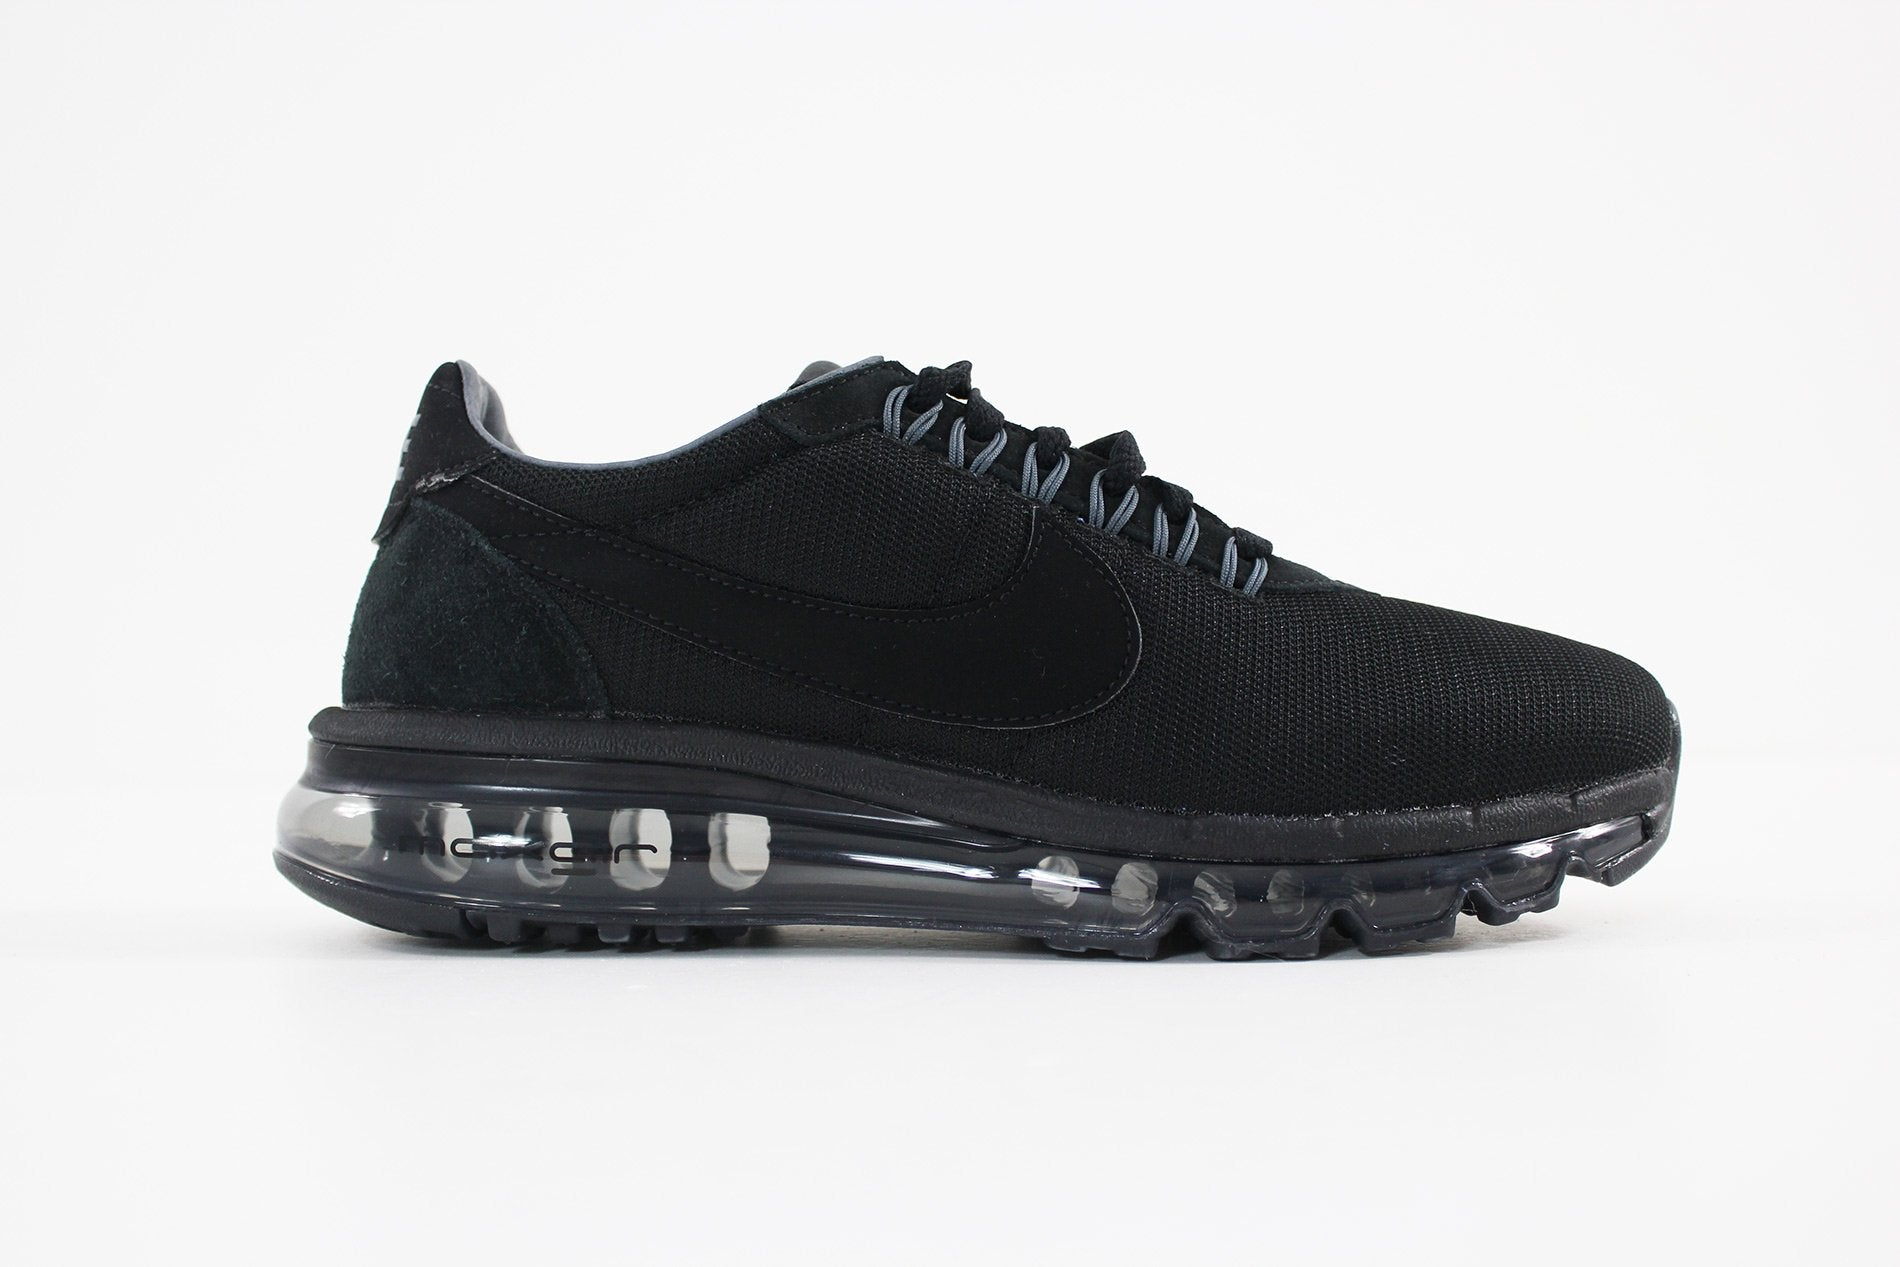 Nike - Men's Nike Air Max LD Zero Shoe (BLACK/BLACK-DARK GREY) 848624-005